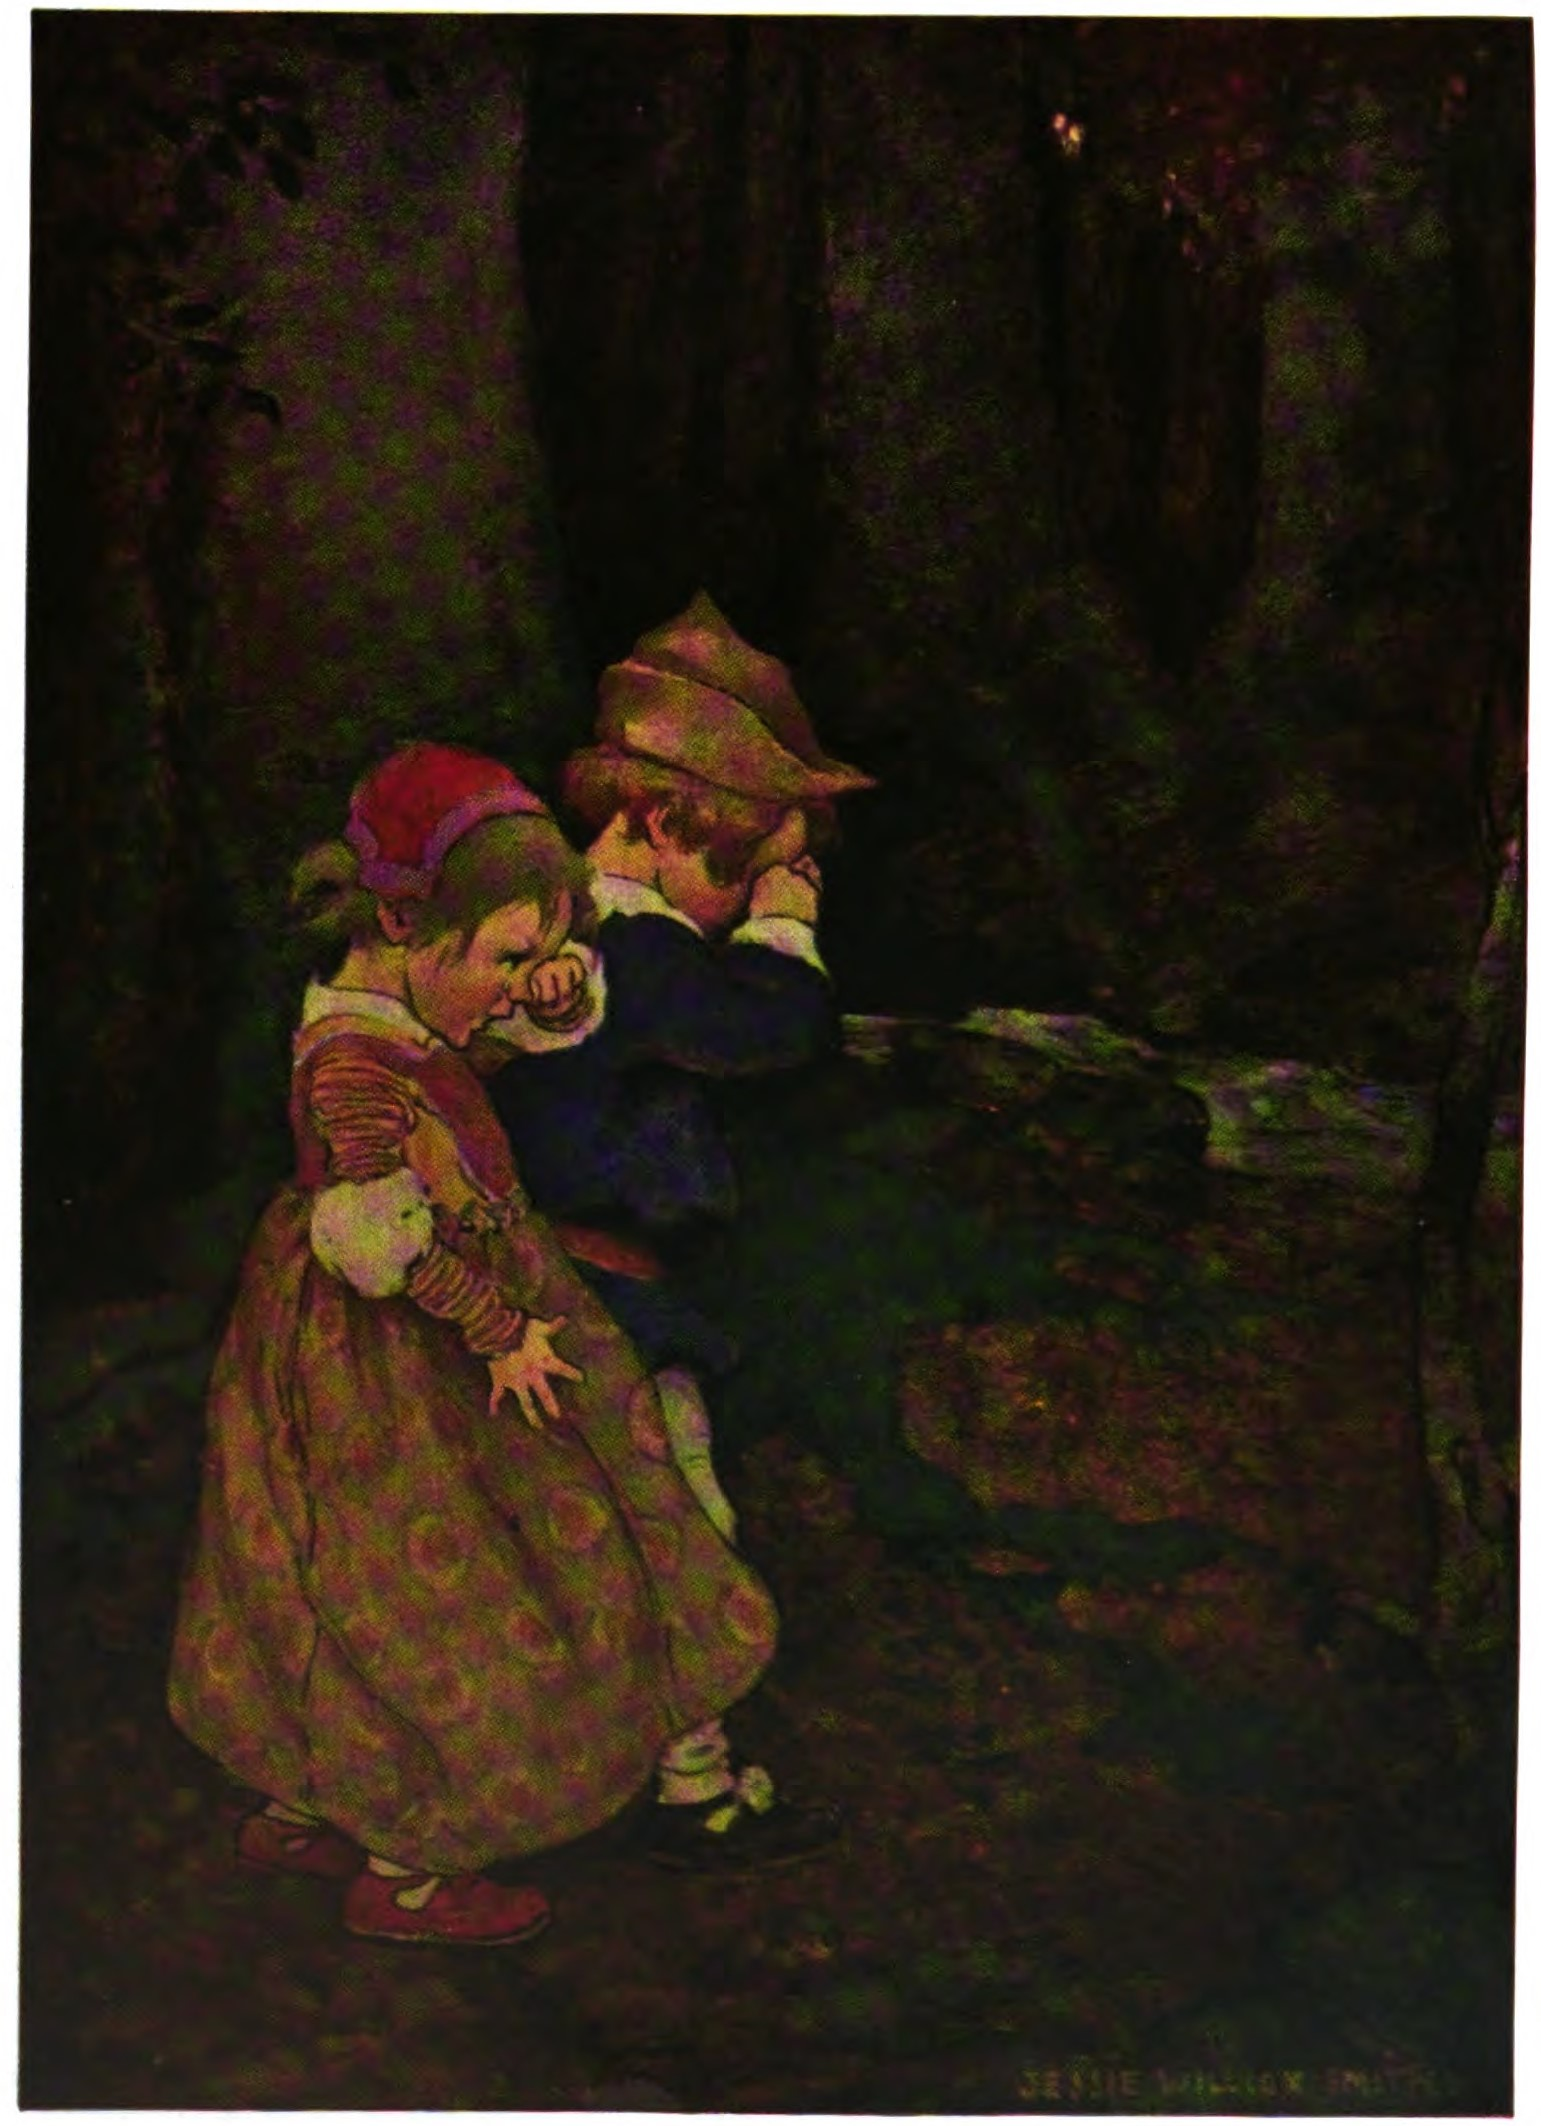 Mysterious people from other worlds: The Green Children of Woolpit-Babes_in_the_Wood